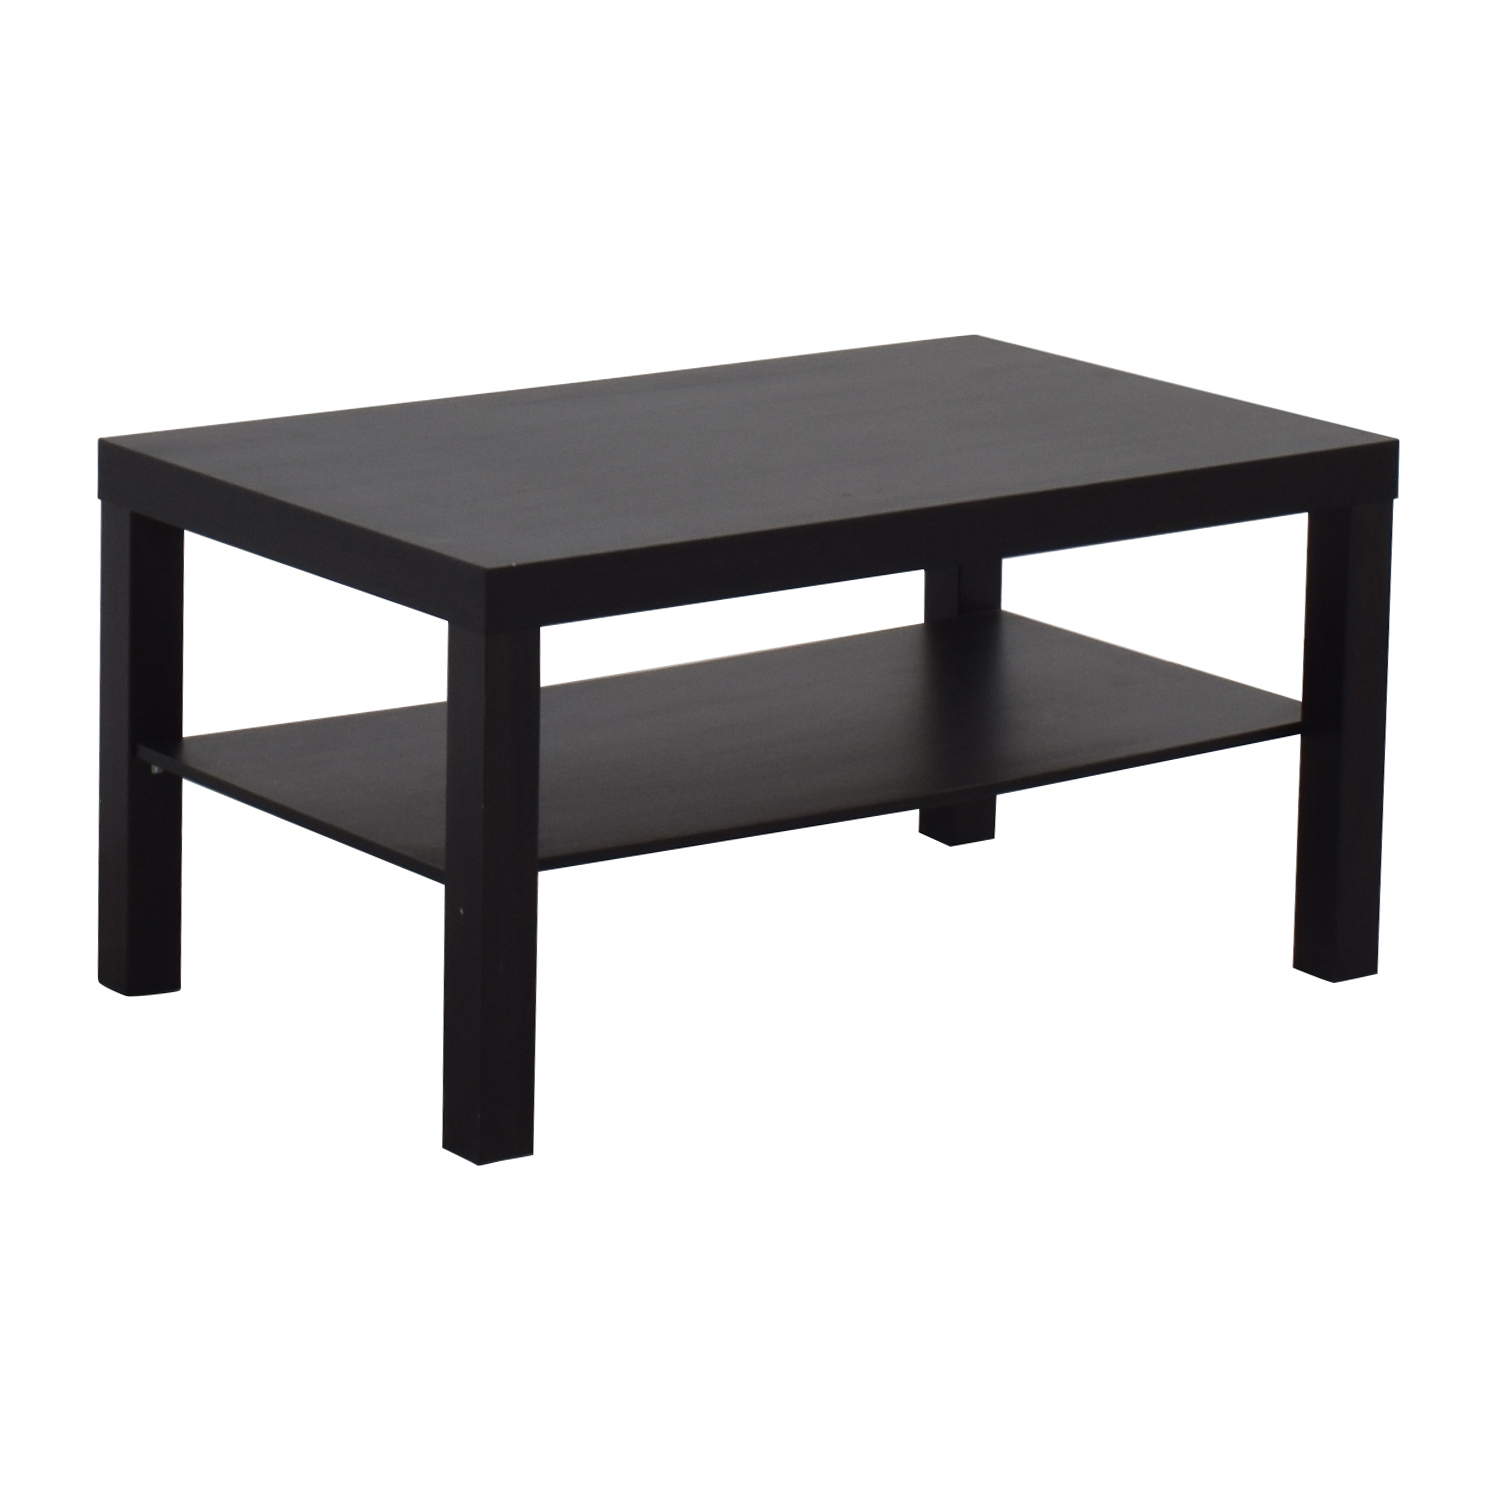 42 off ikea ikea black coffee table tables. Black Bedroom Furniture Sets. Home Design Ideas